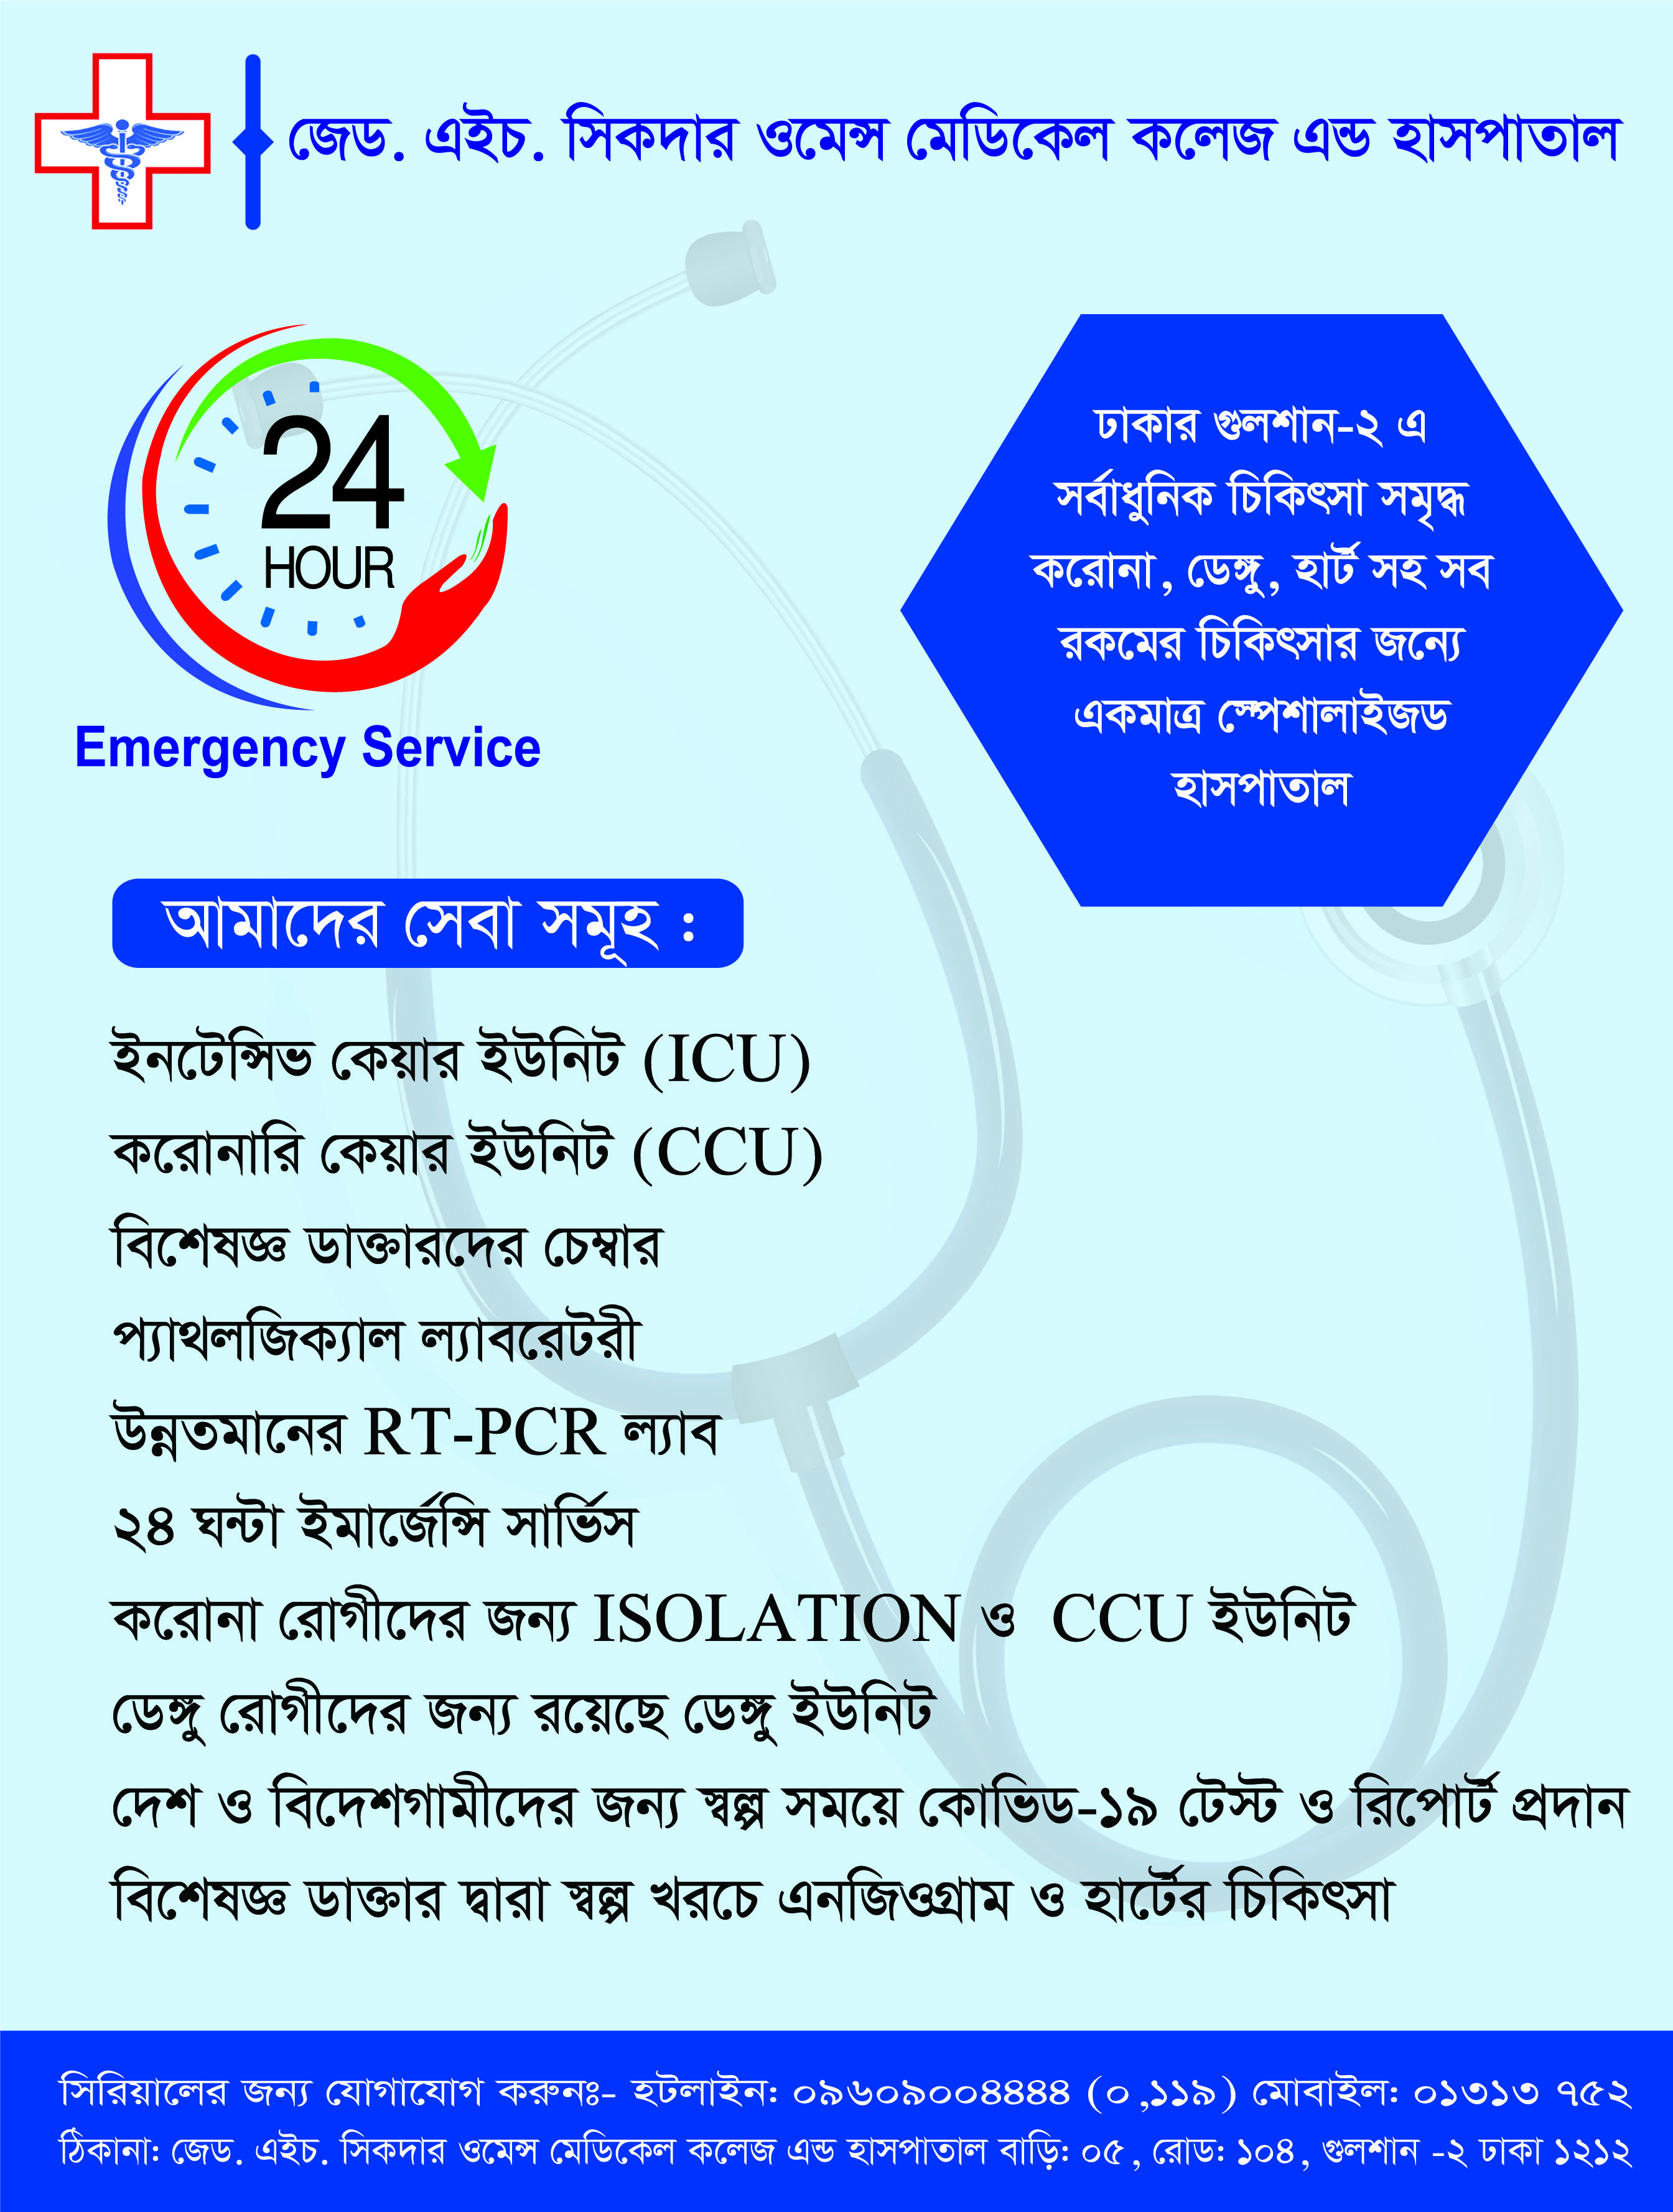 Zainul Haque Sikder Women's Medical College & Hospital, Gulshan Branch is a Government Approved lab for COVID-19 test for both general and foreign traveler